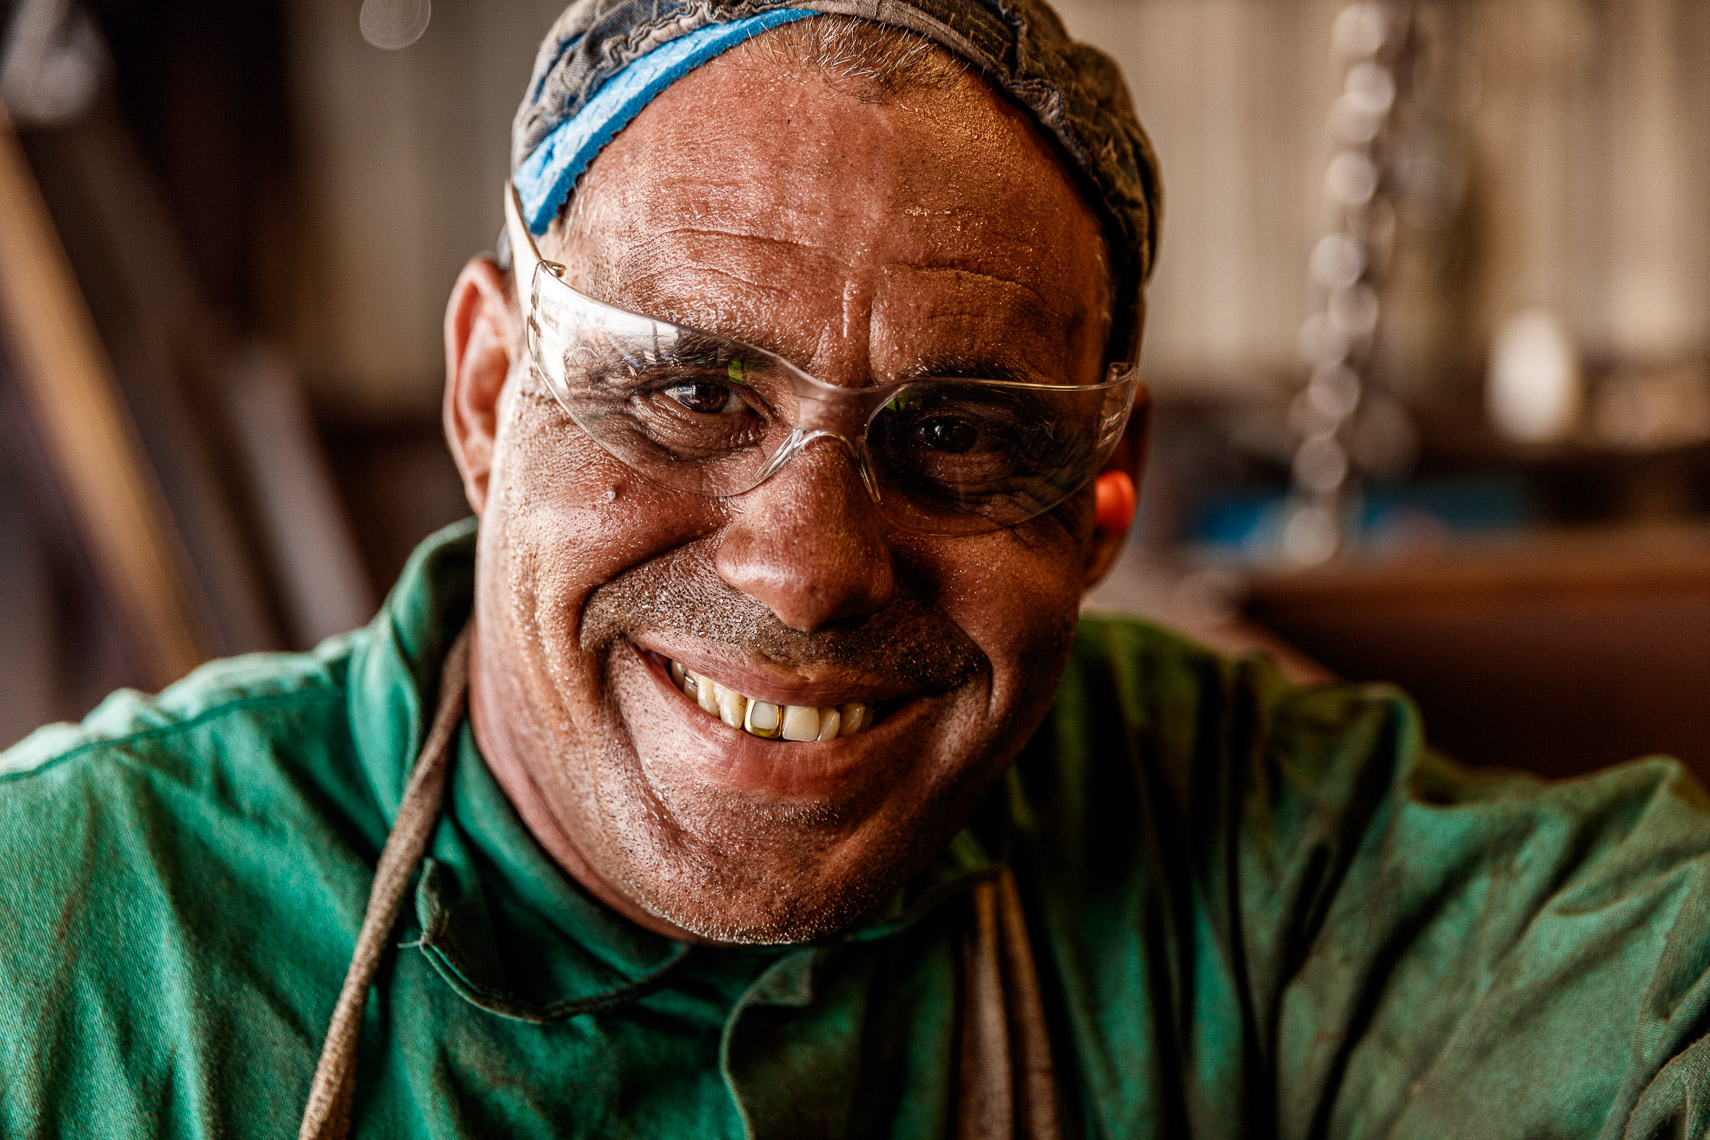 Portrait of a welder in Florida